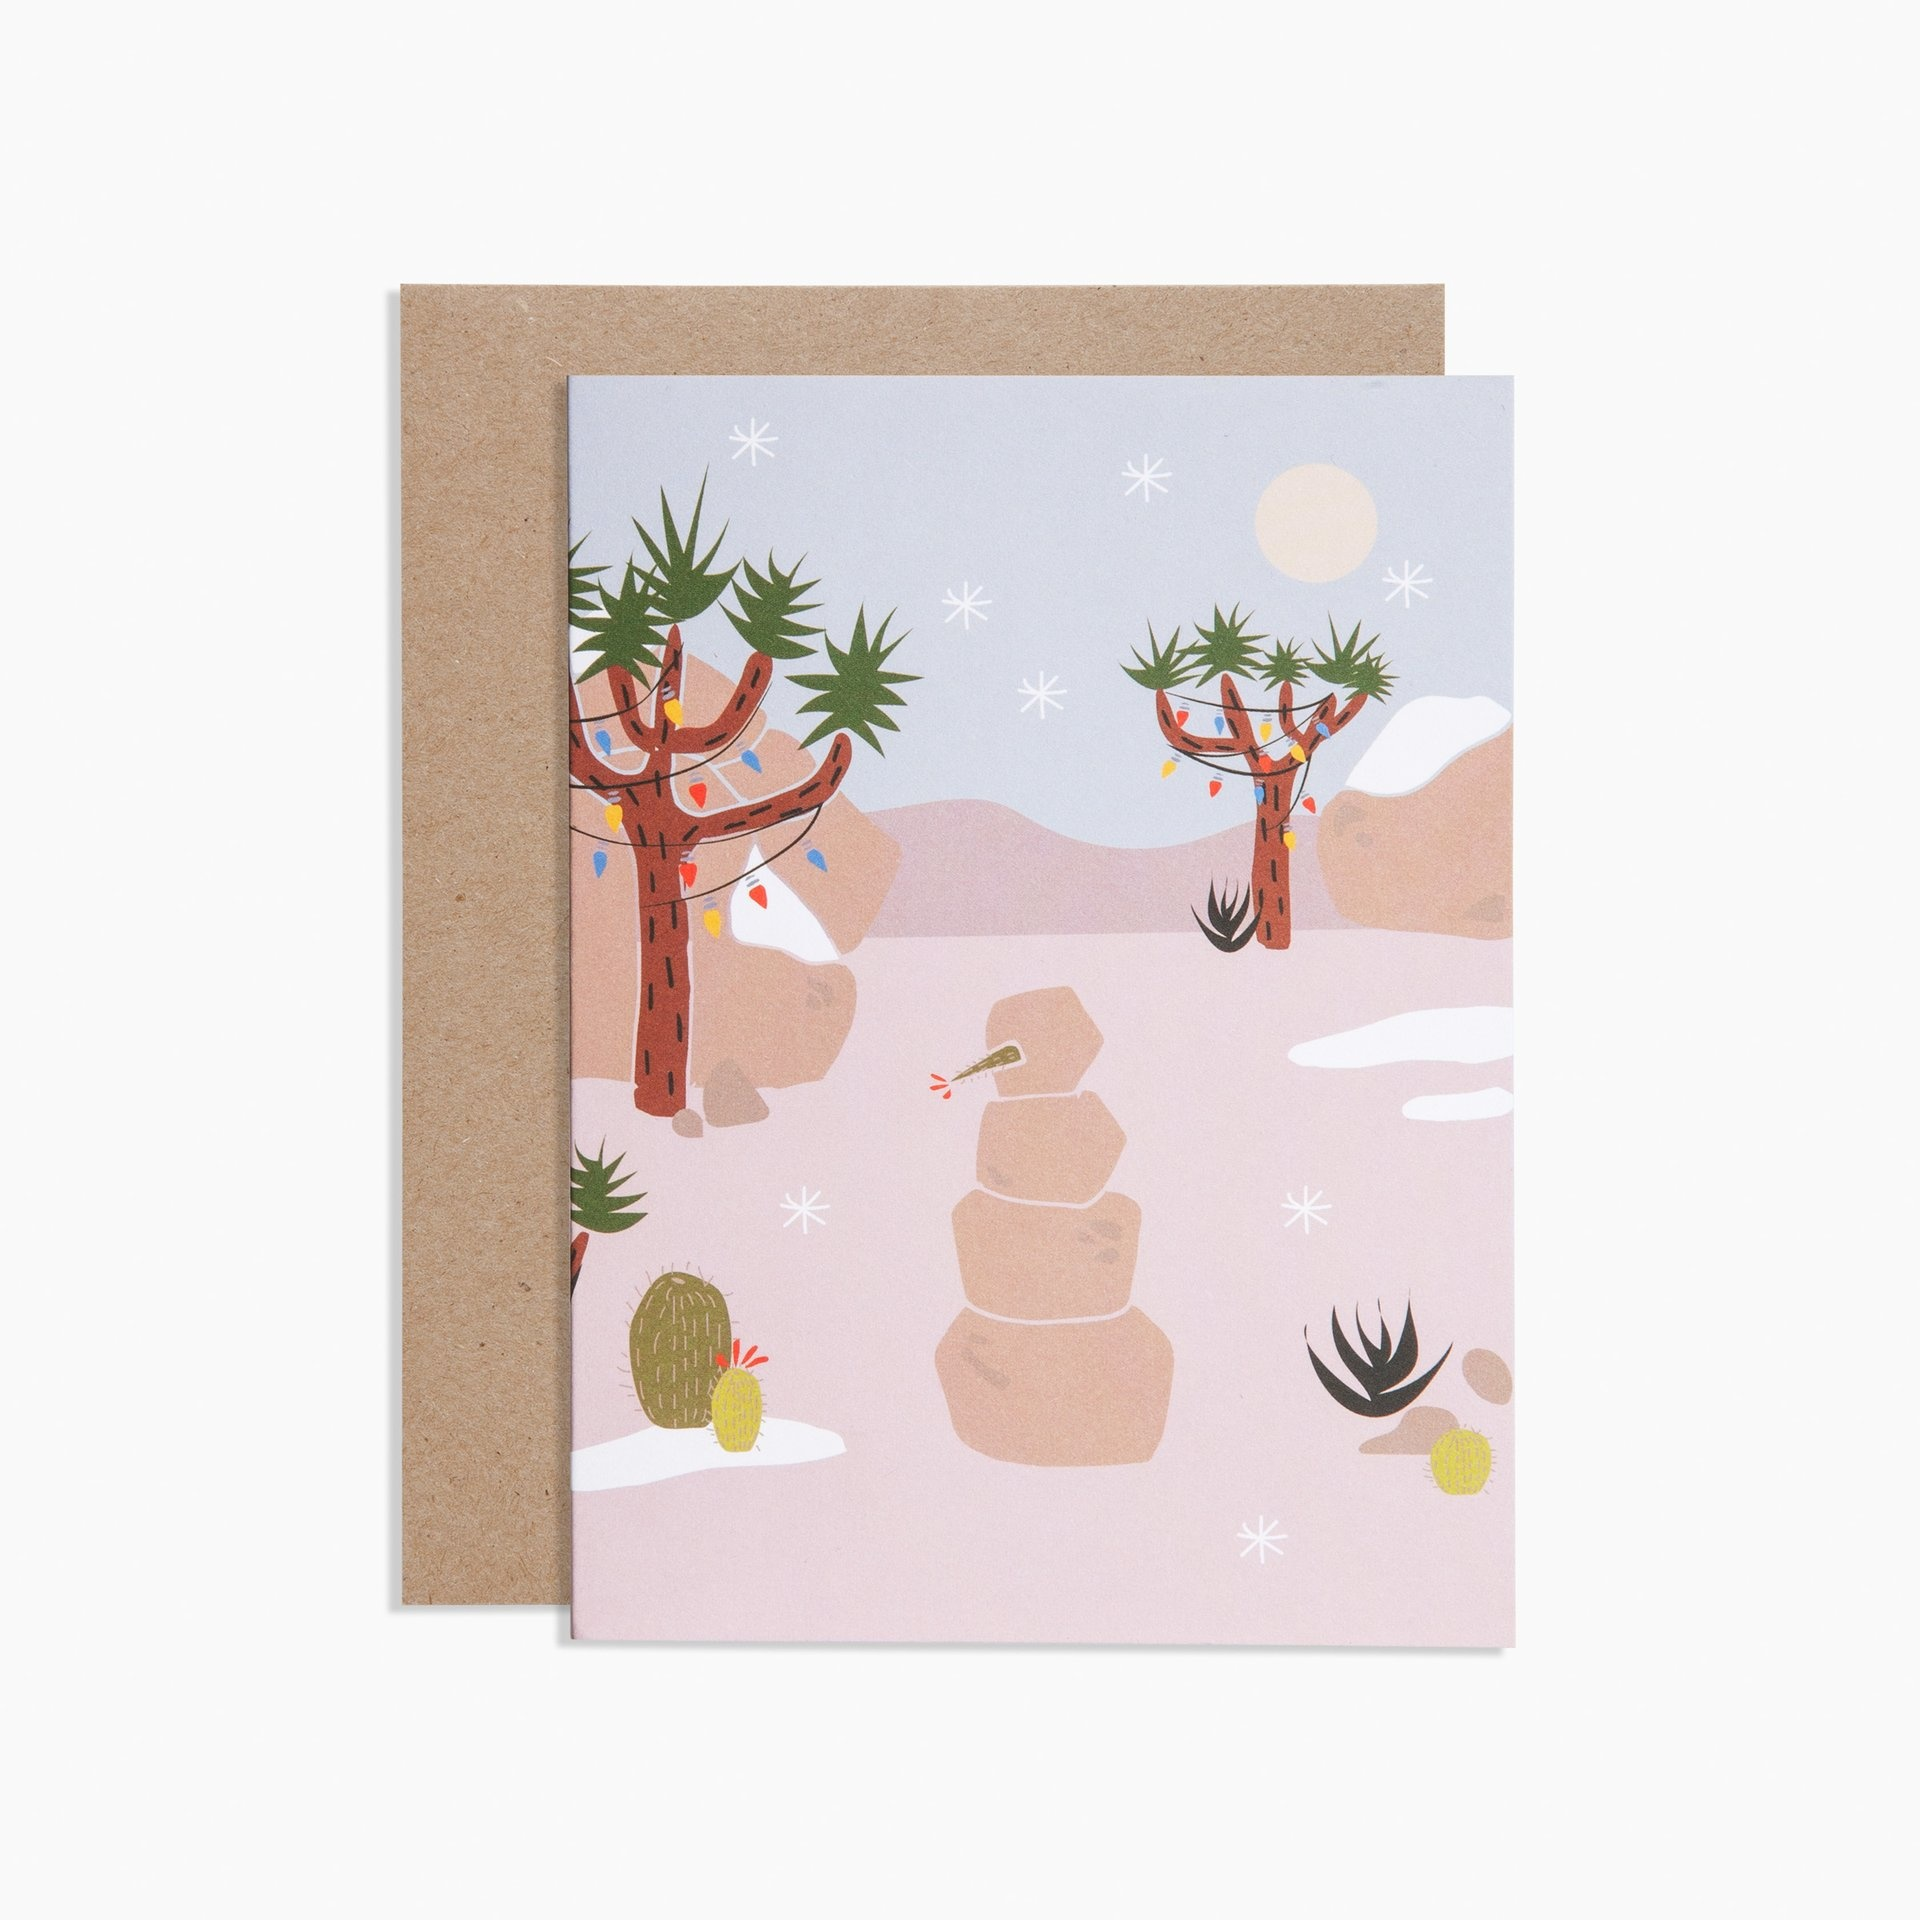 Joshua Tree Cards A Cheng Shop Inc We offer tree care for an array of landscapes in a results oriented, professional manner & never say no when it comes to watch the video on experienced crew member at joshua rescuing a cat in tree. joshua tree cards